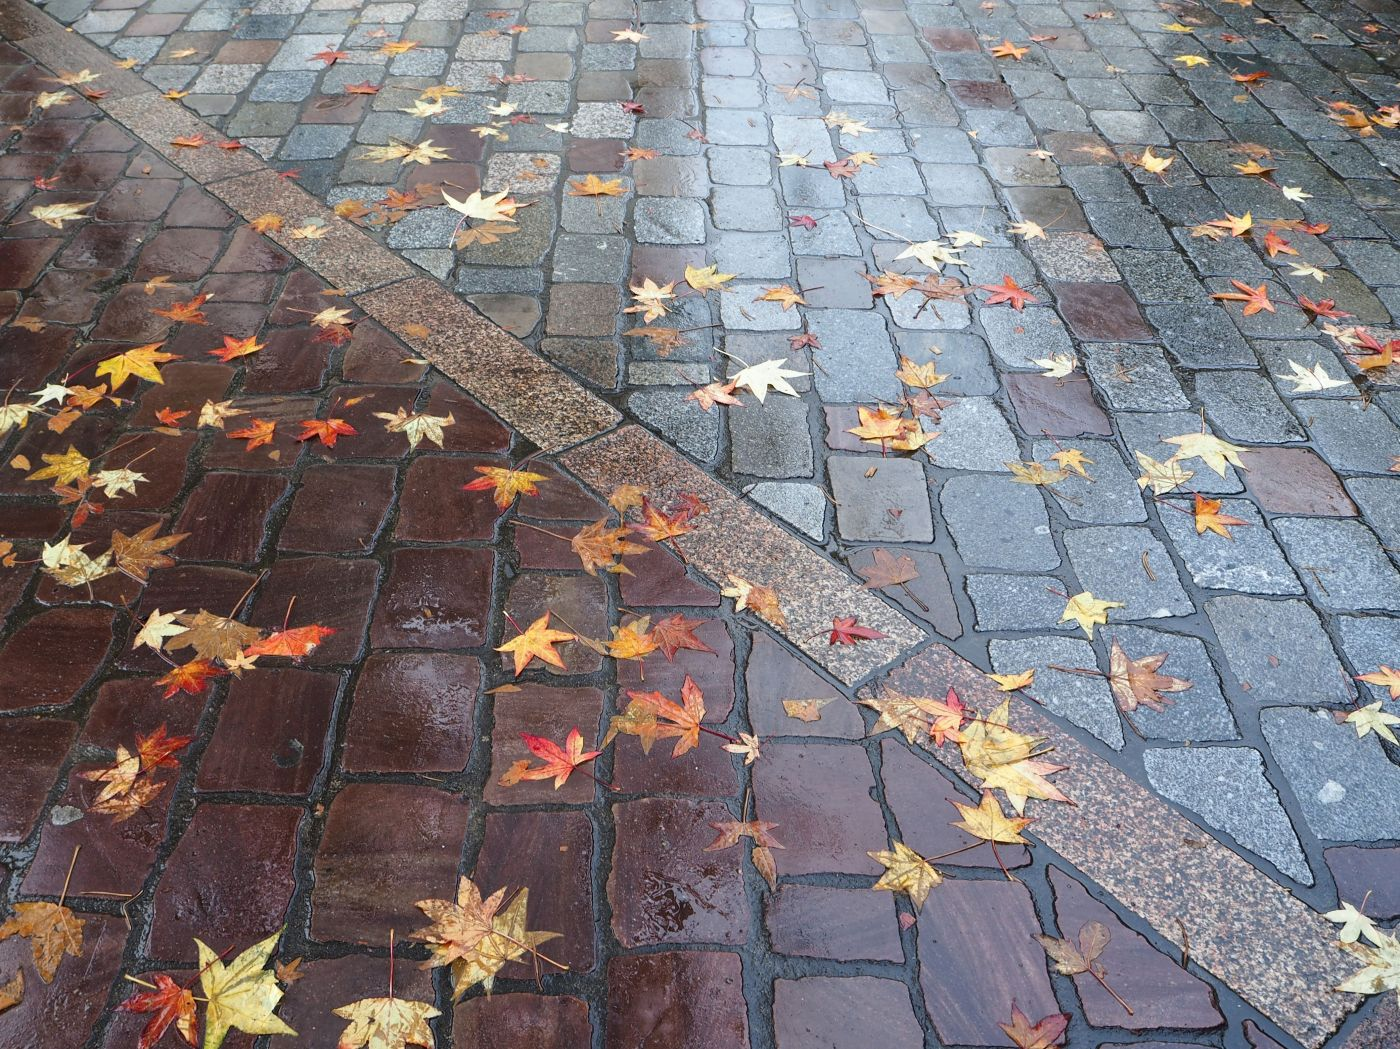 leaves on wet stone paving